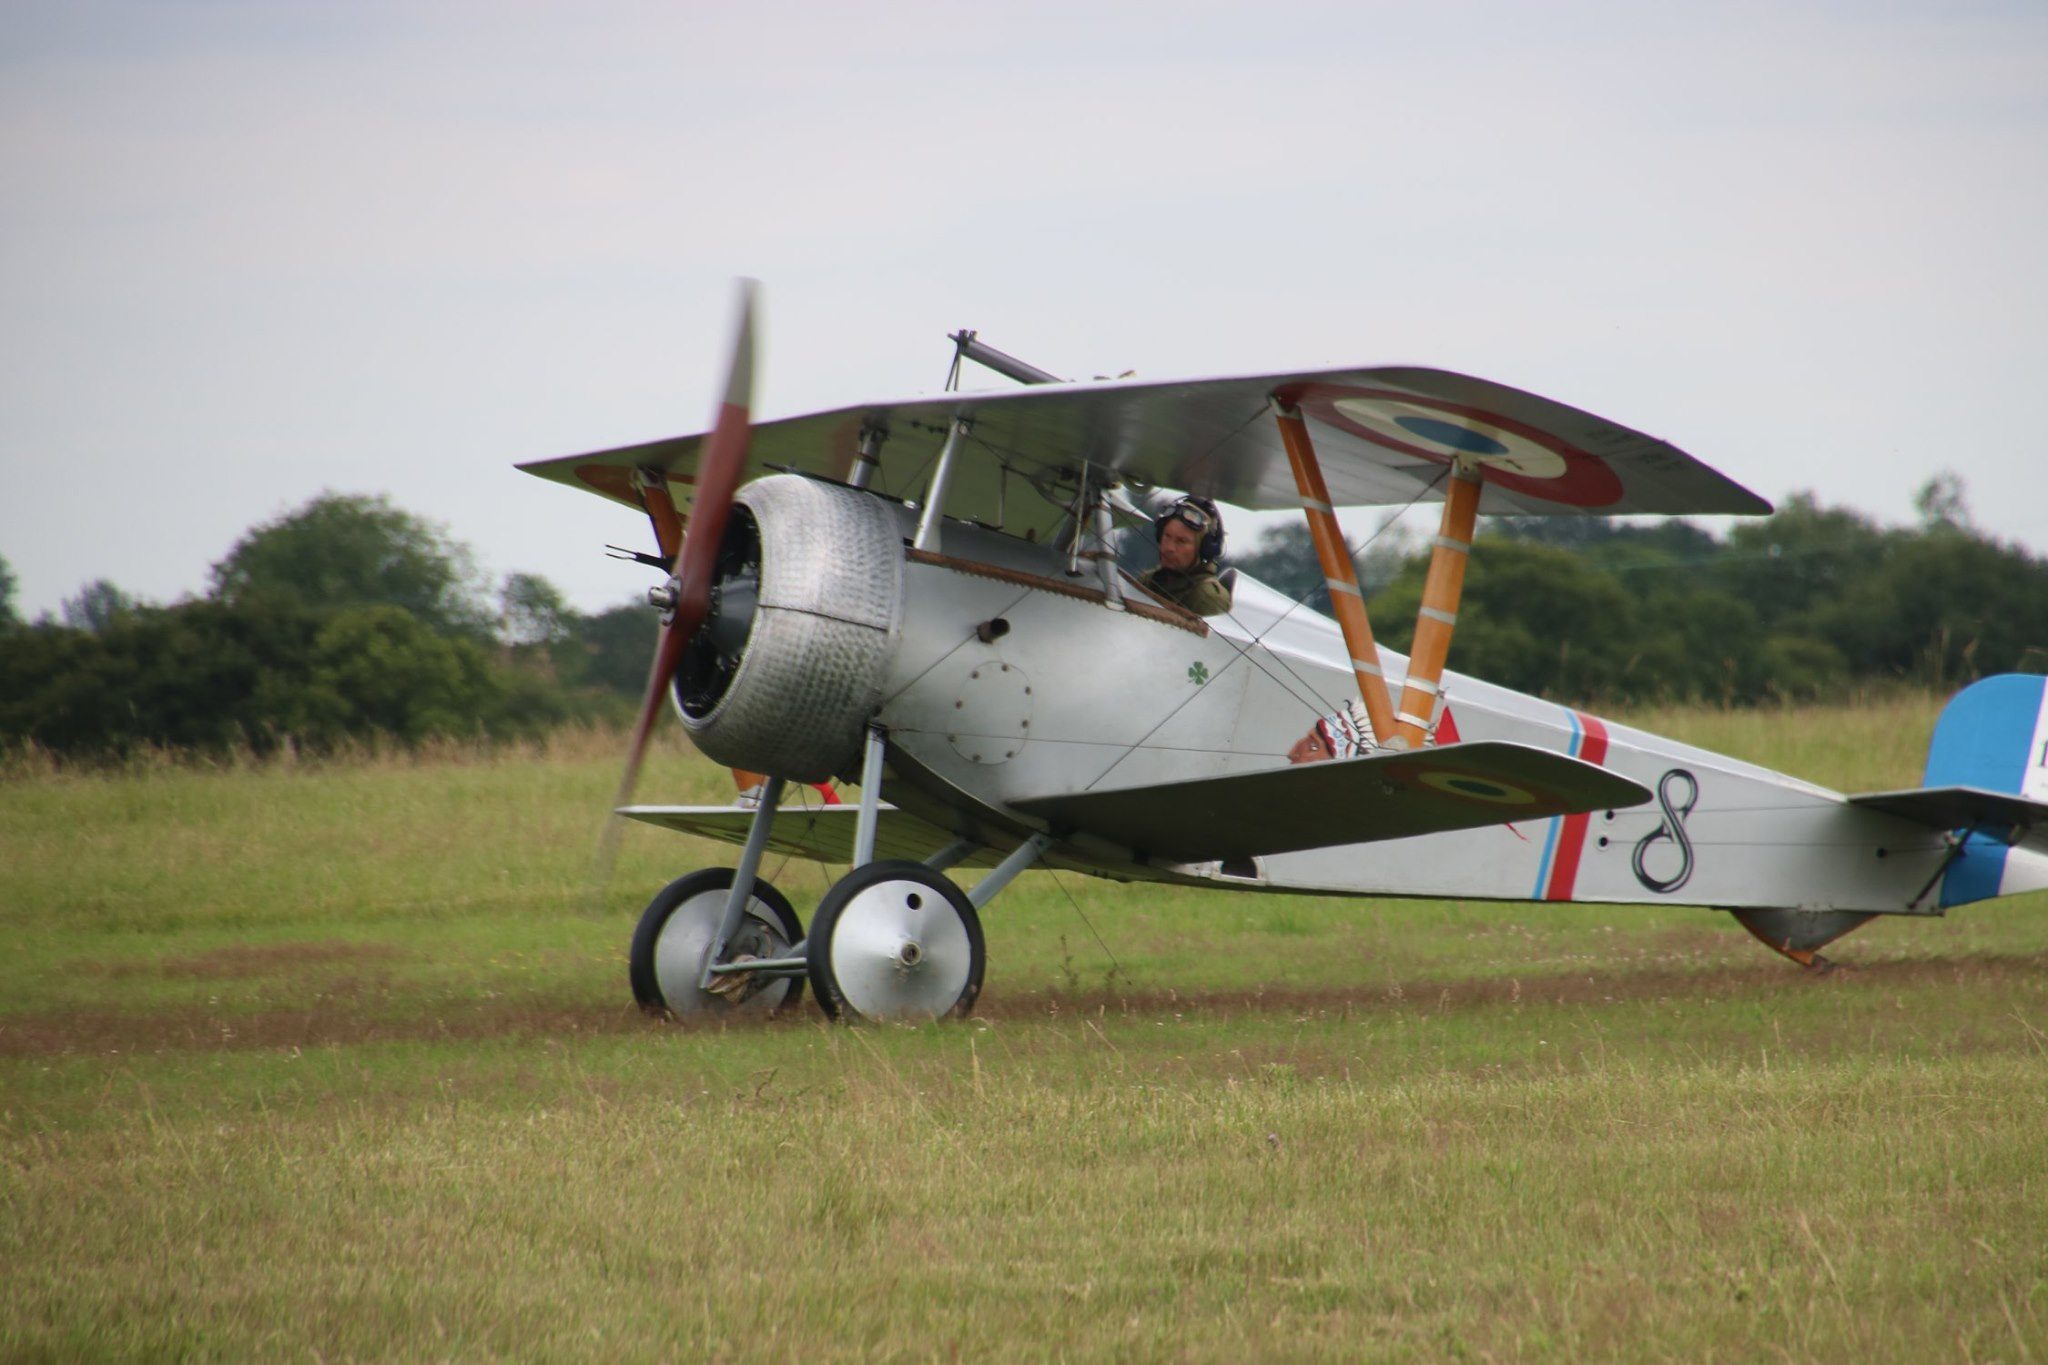 Nieuwport Fighter at Stow Maries